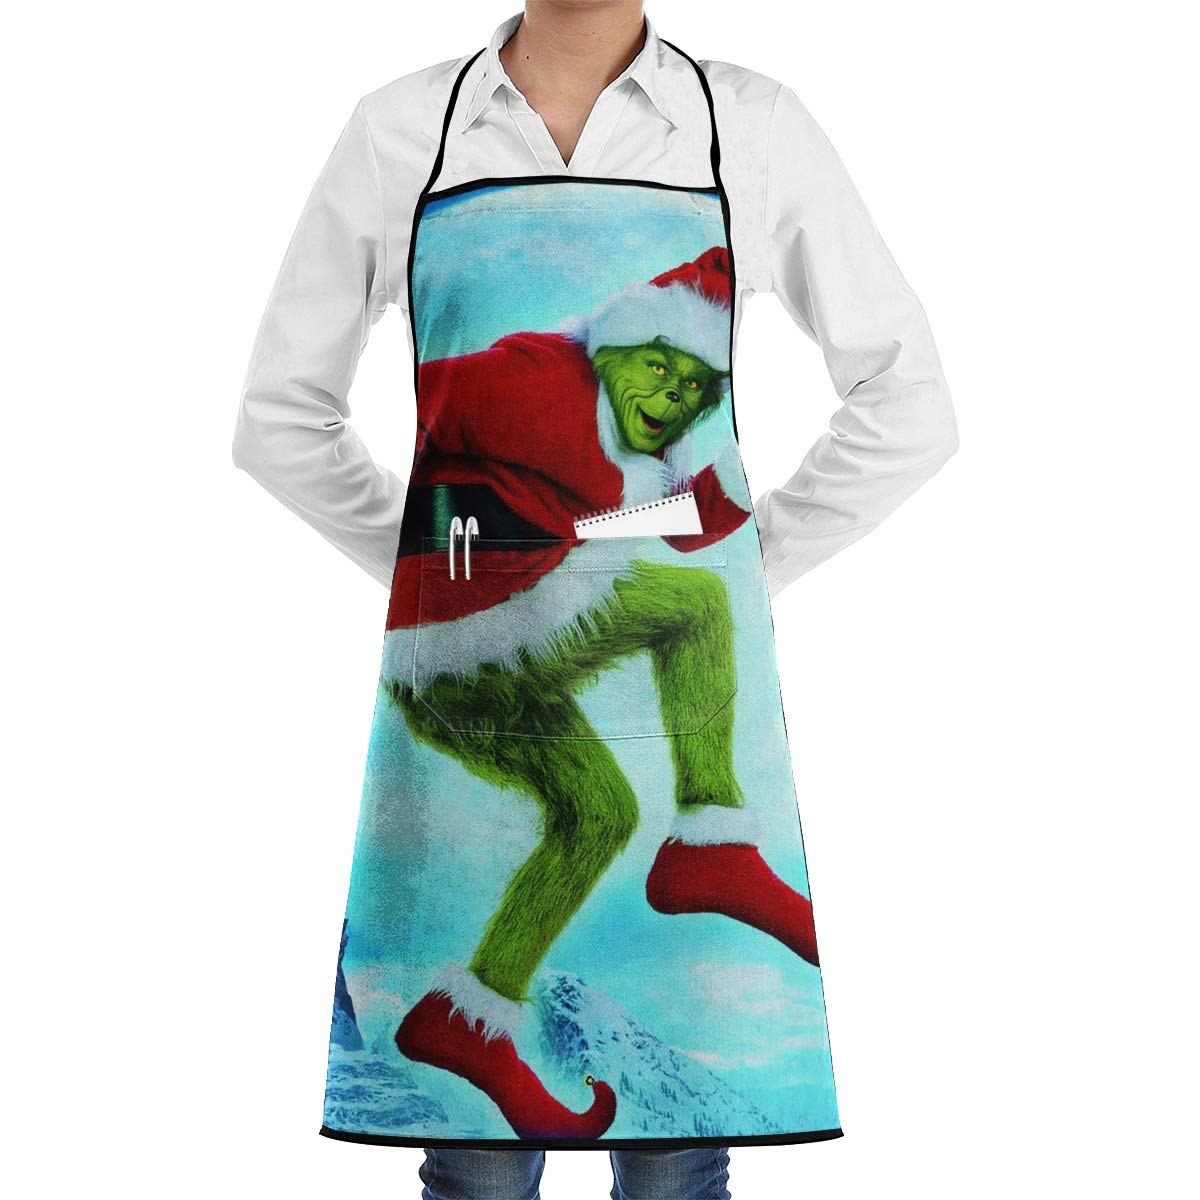 Home Bib Kitchen Aquaculture Art Apron with Pockets The Grinch Stole Christmas for Shop Cooking BBQ Aprons Woodwork for Chef Craftsmen Painter Artist Painters School Students, Utility Or Work Apron